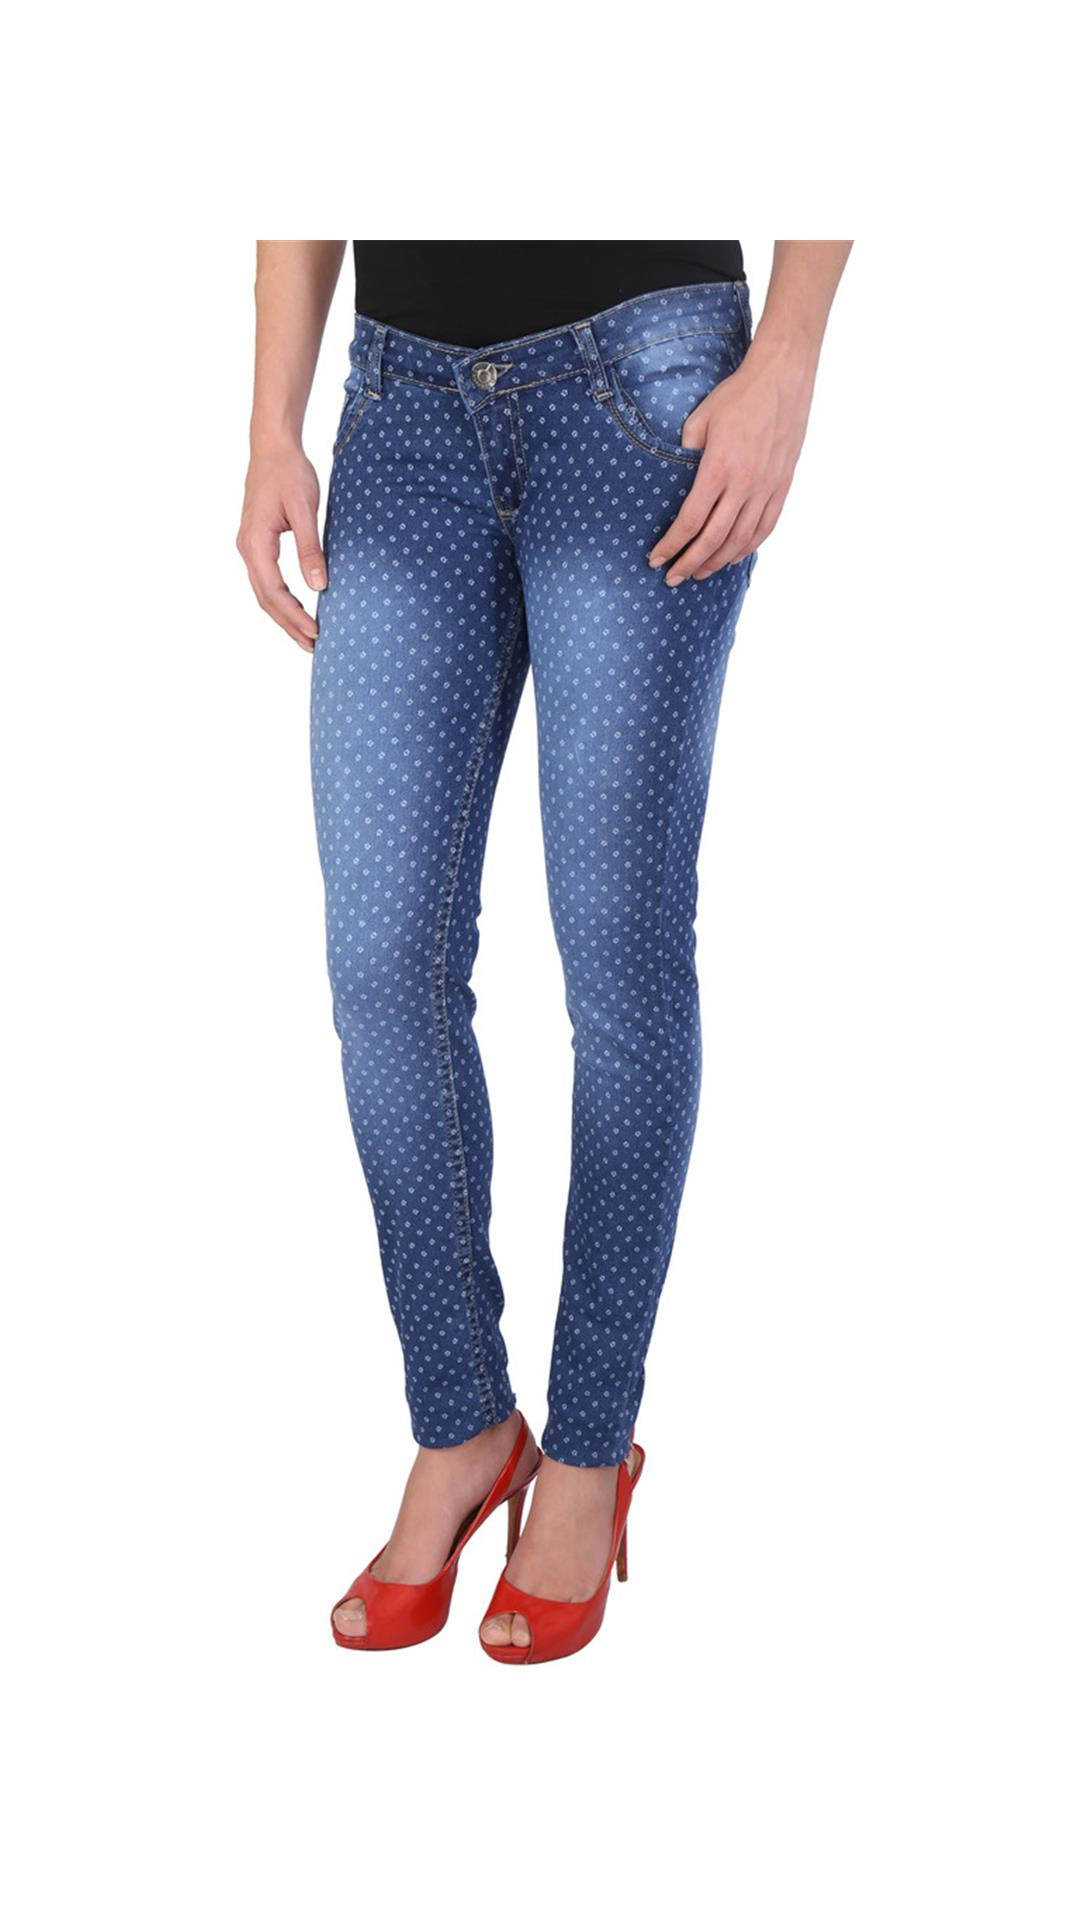 WineGlass Printed Denims stretchable Slim fit Jeans For Women, Colour Blue 720-CH Size